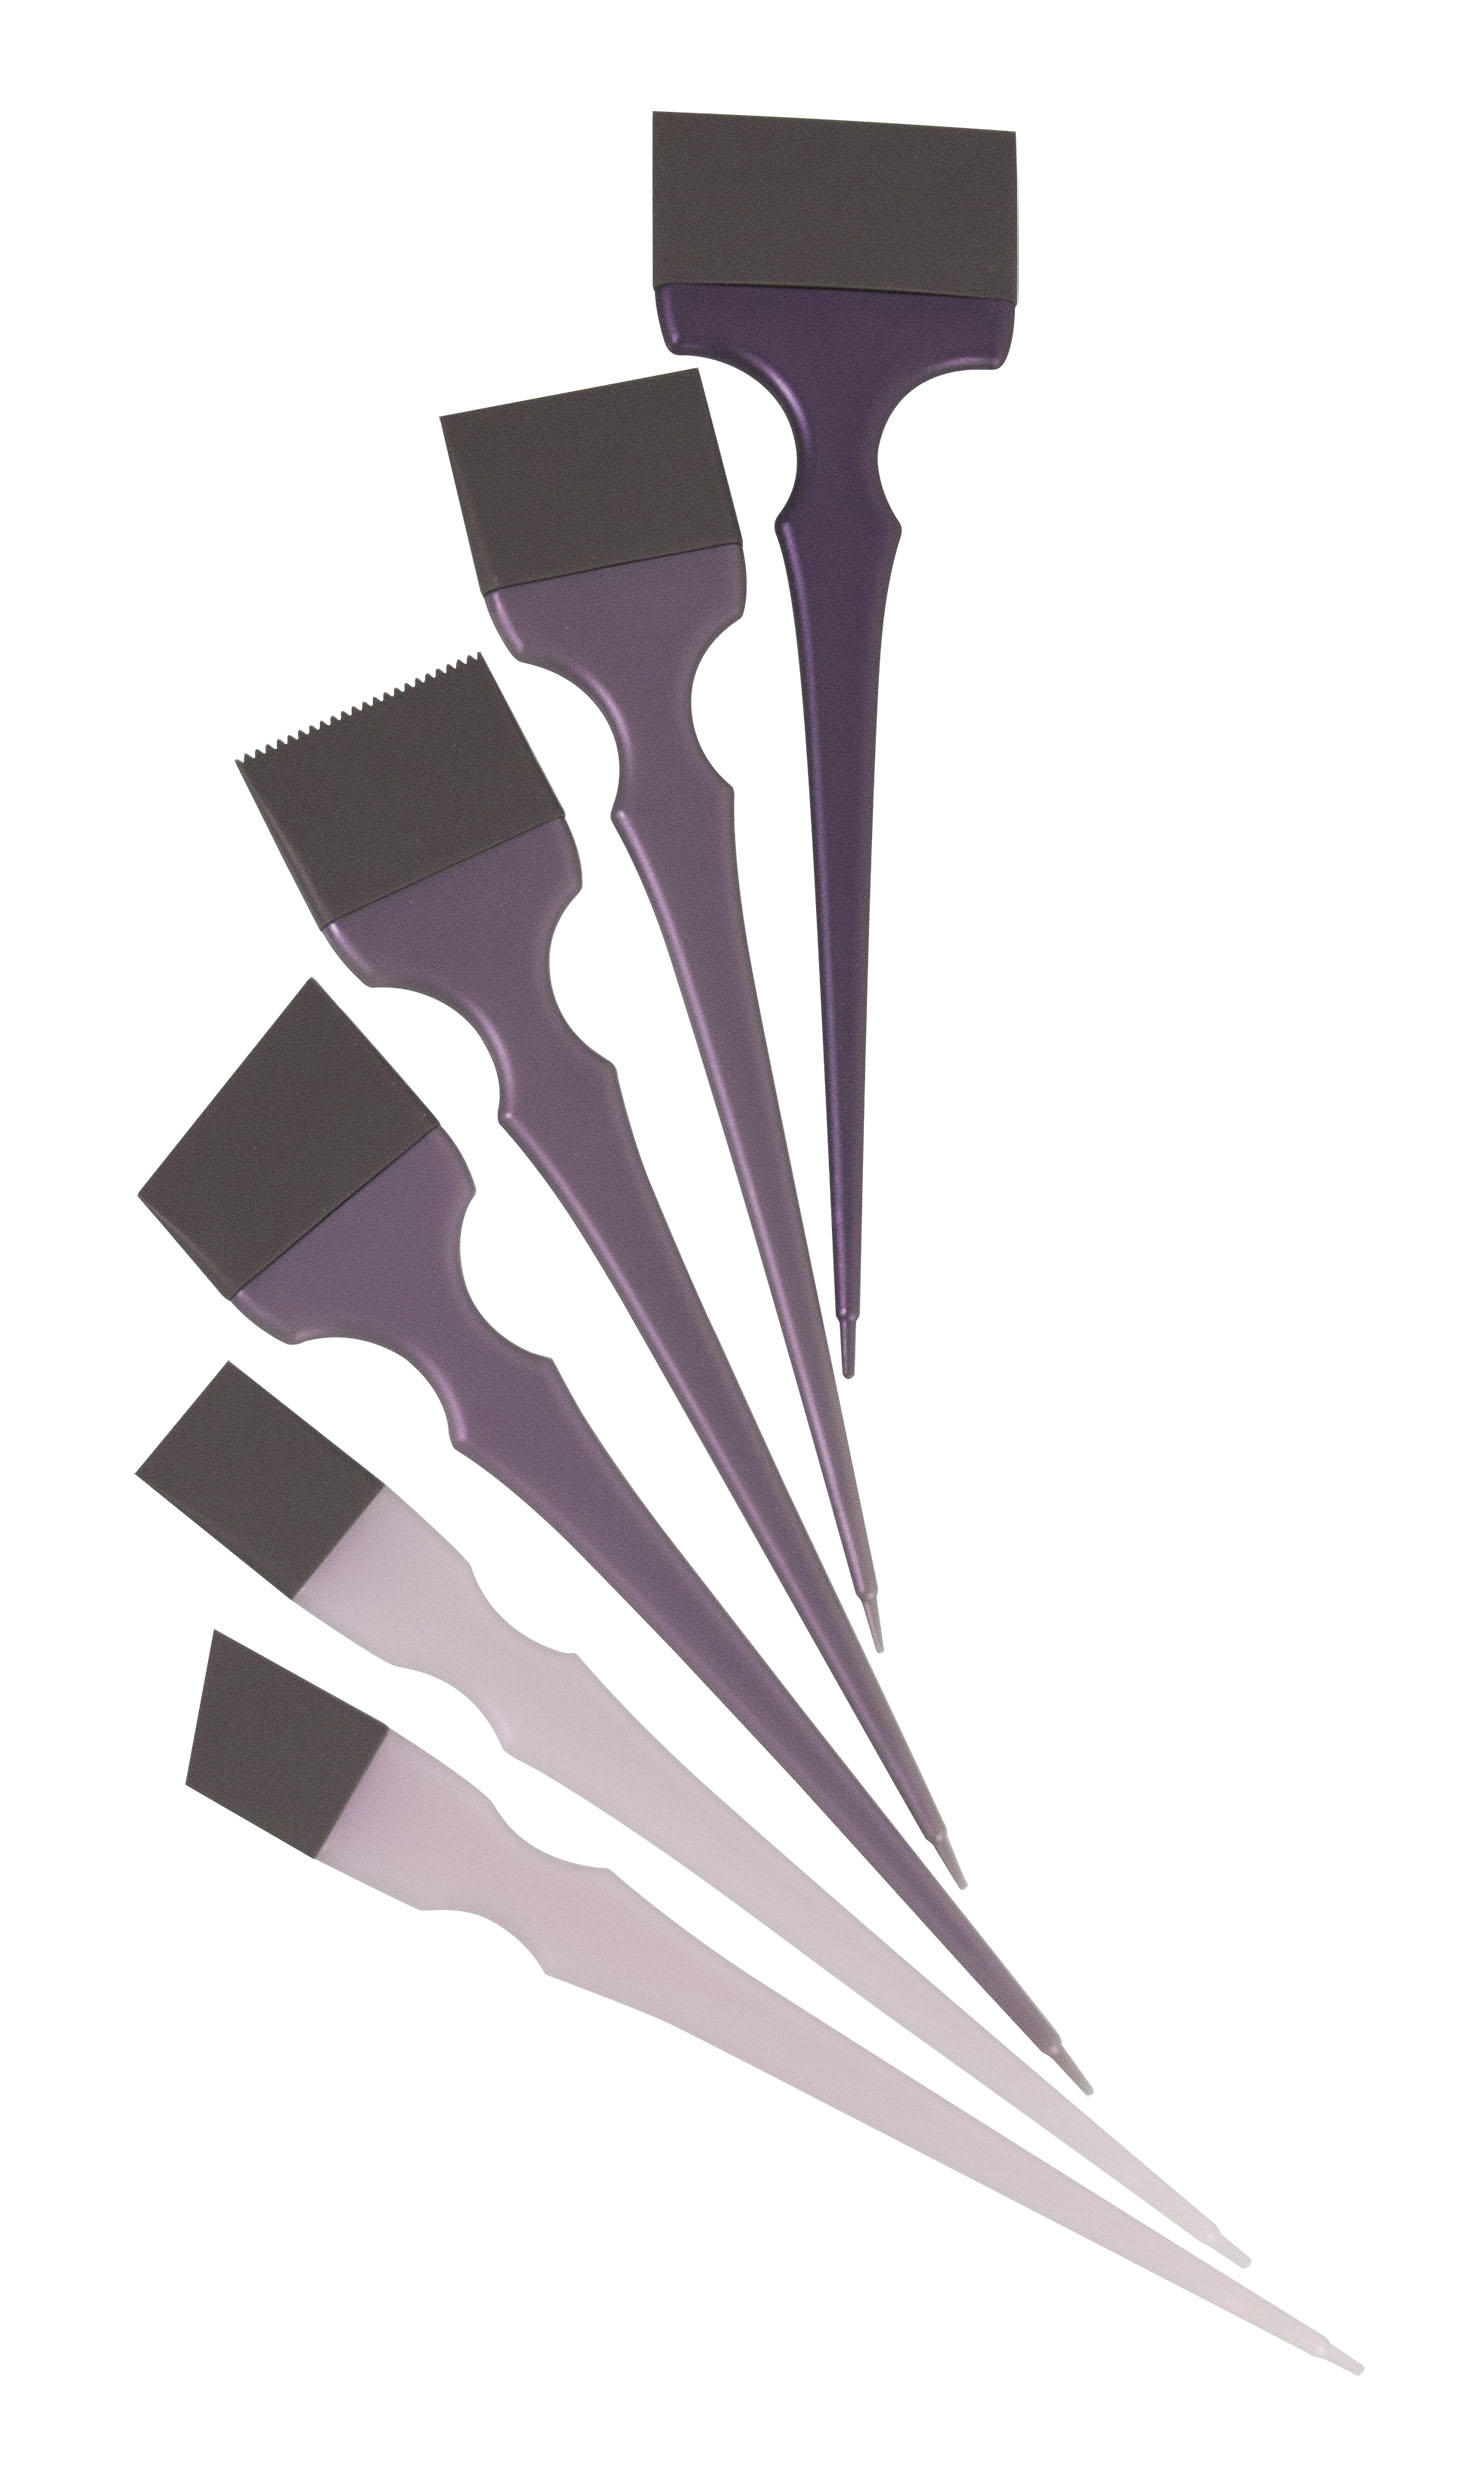 Silicone Hair Dye Colouring Brush Hair Tint Brush Hair Hairstyling Accessory Comb 6Pcs Per Set